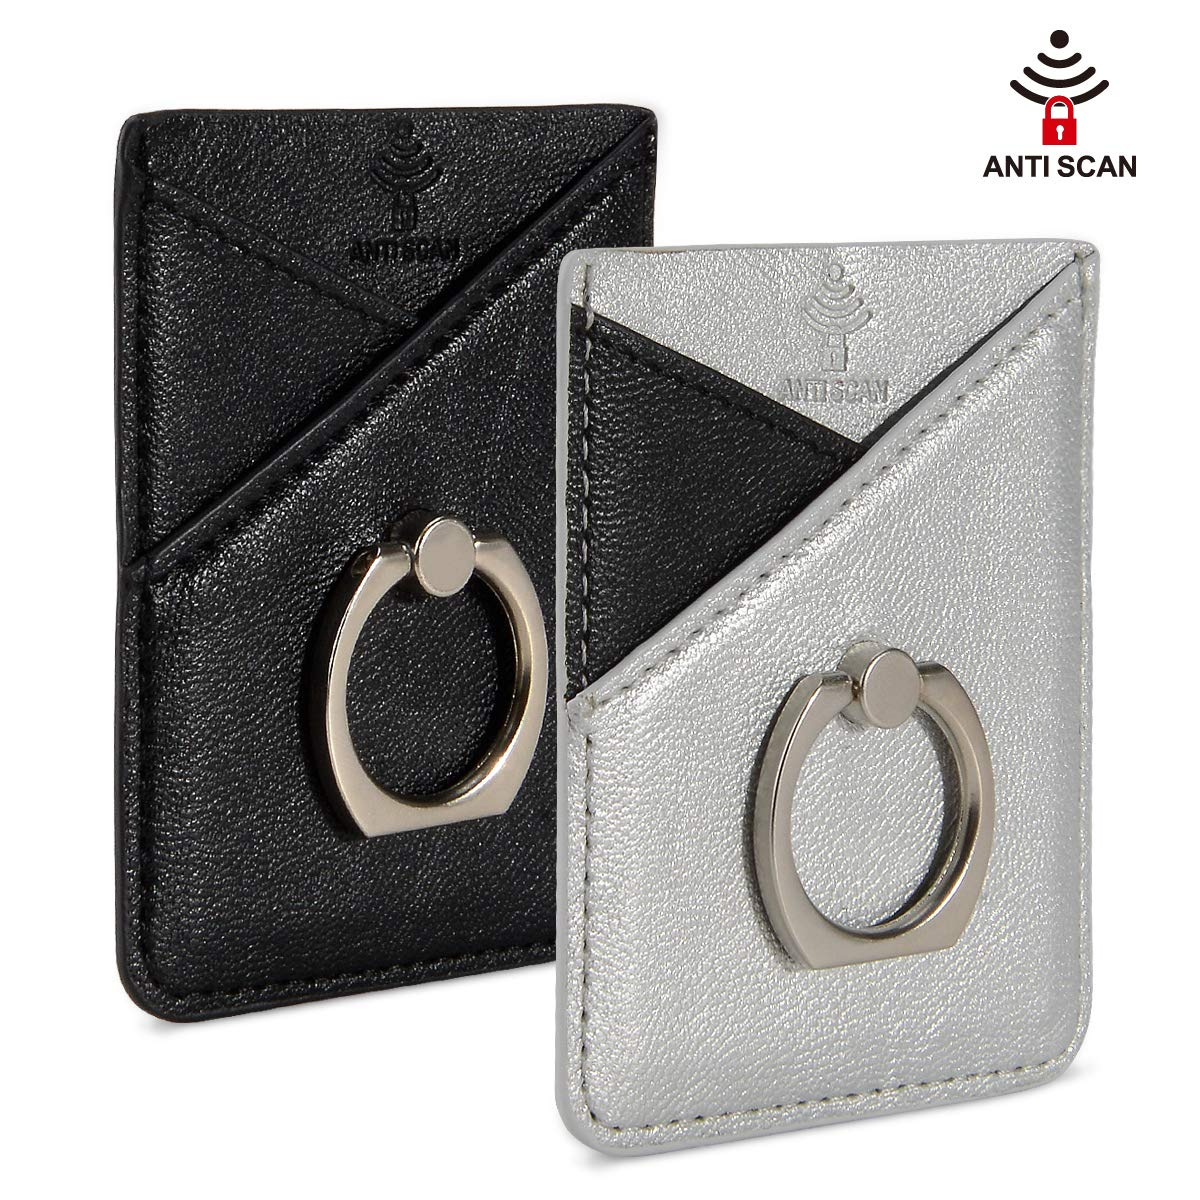 SHANSHUI RFID Blocking Phone Card Sleeve, Reusable Washable PU Leather Phone Pocket with Ring Grip Stand Stick-on ID Credit Card Wallet Case Pouch Pocket for Most Smartphones- Black Silver by SHANSHUI